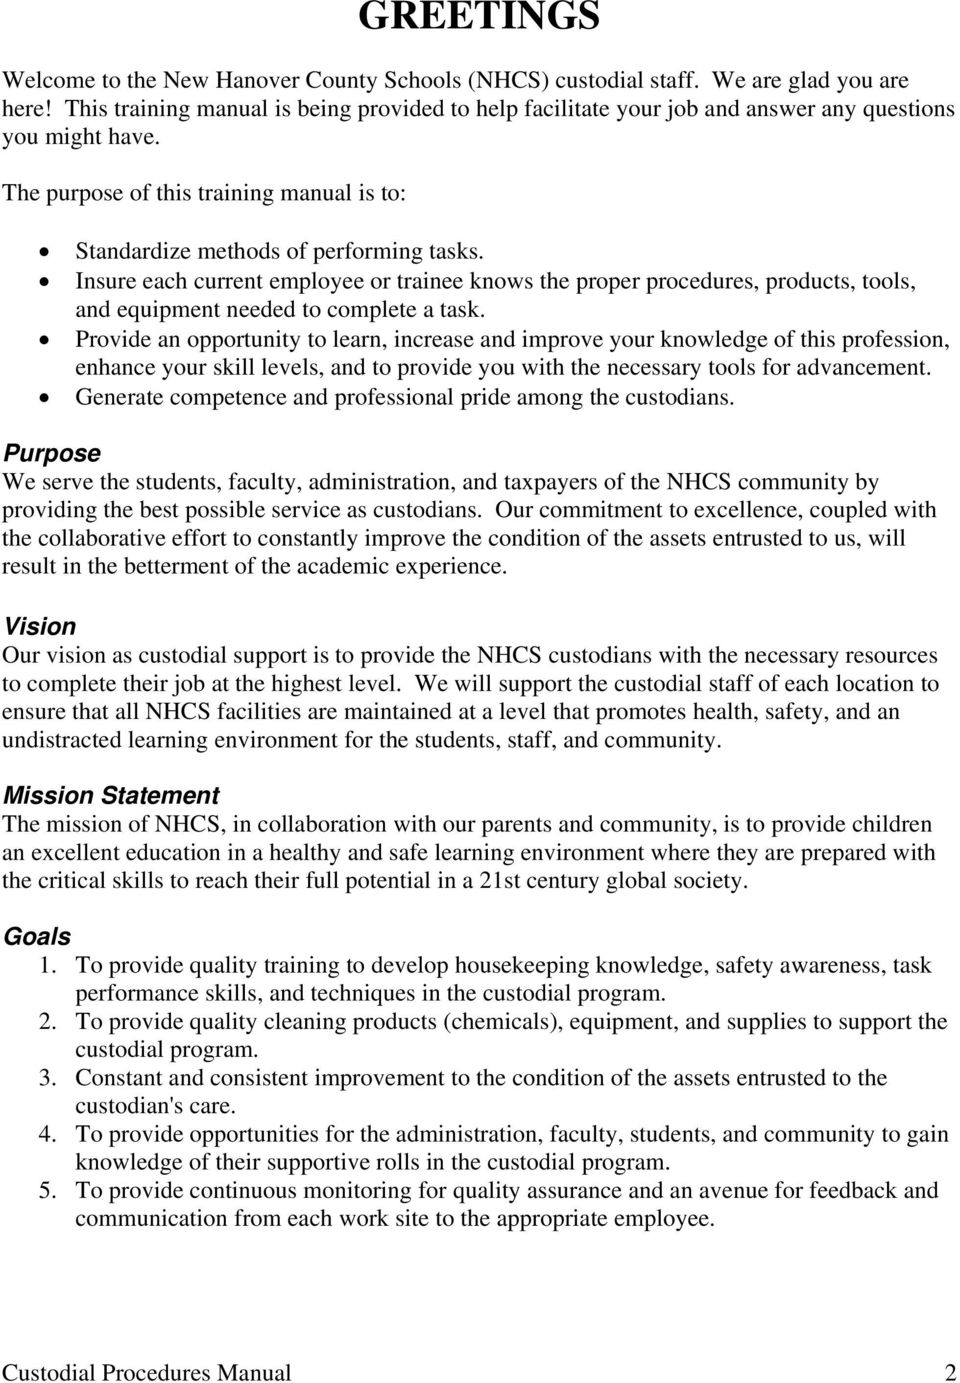 Custodial Procedures Manual 2. Insure each current employee or trainee  knows the proper procedures, products, tools, and